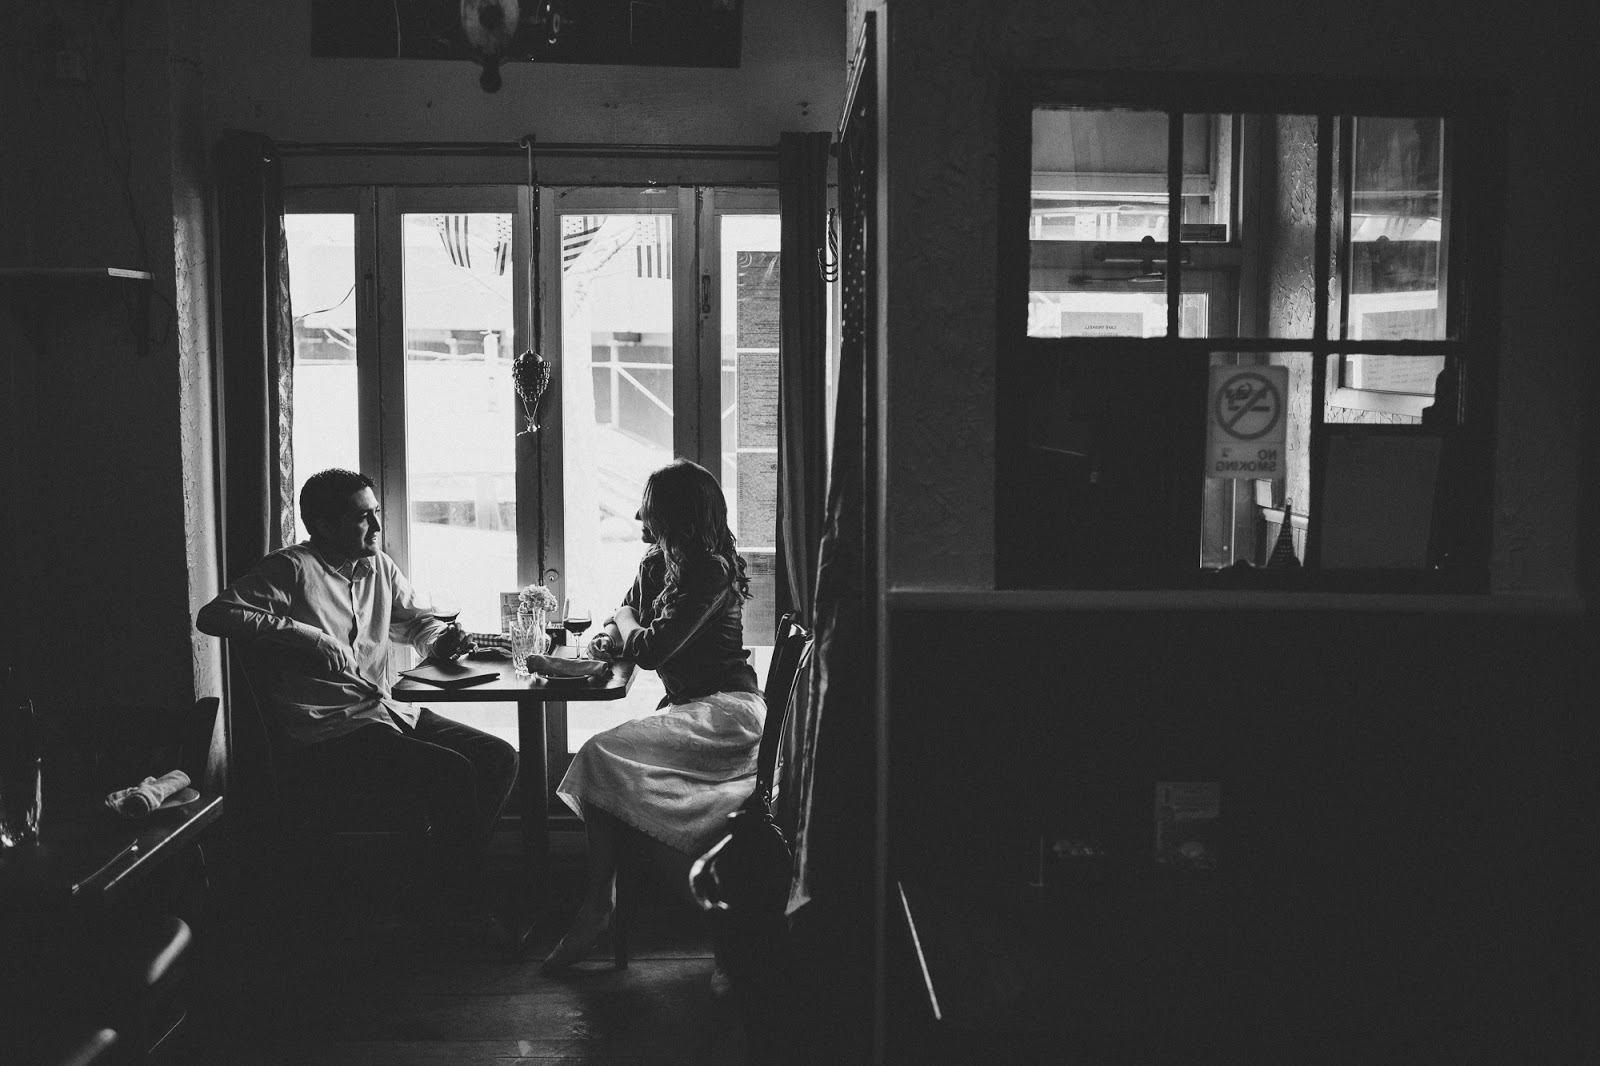 Astoria Engagement Photos at Cafe Triskell | Documentary wedding photography by Cassie Castellaw